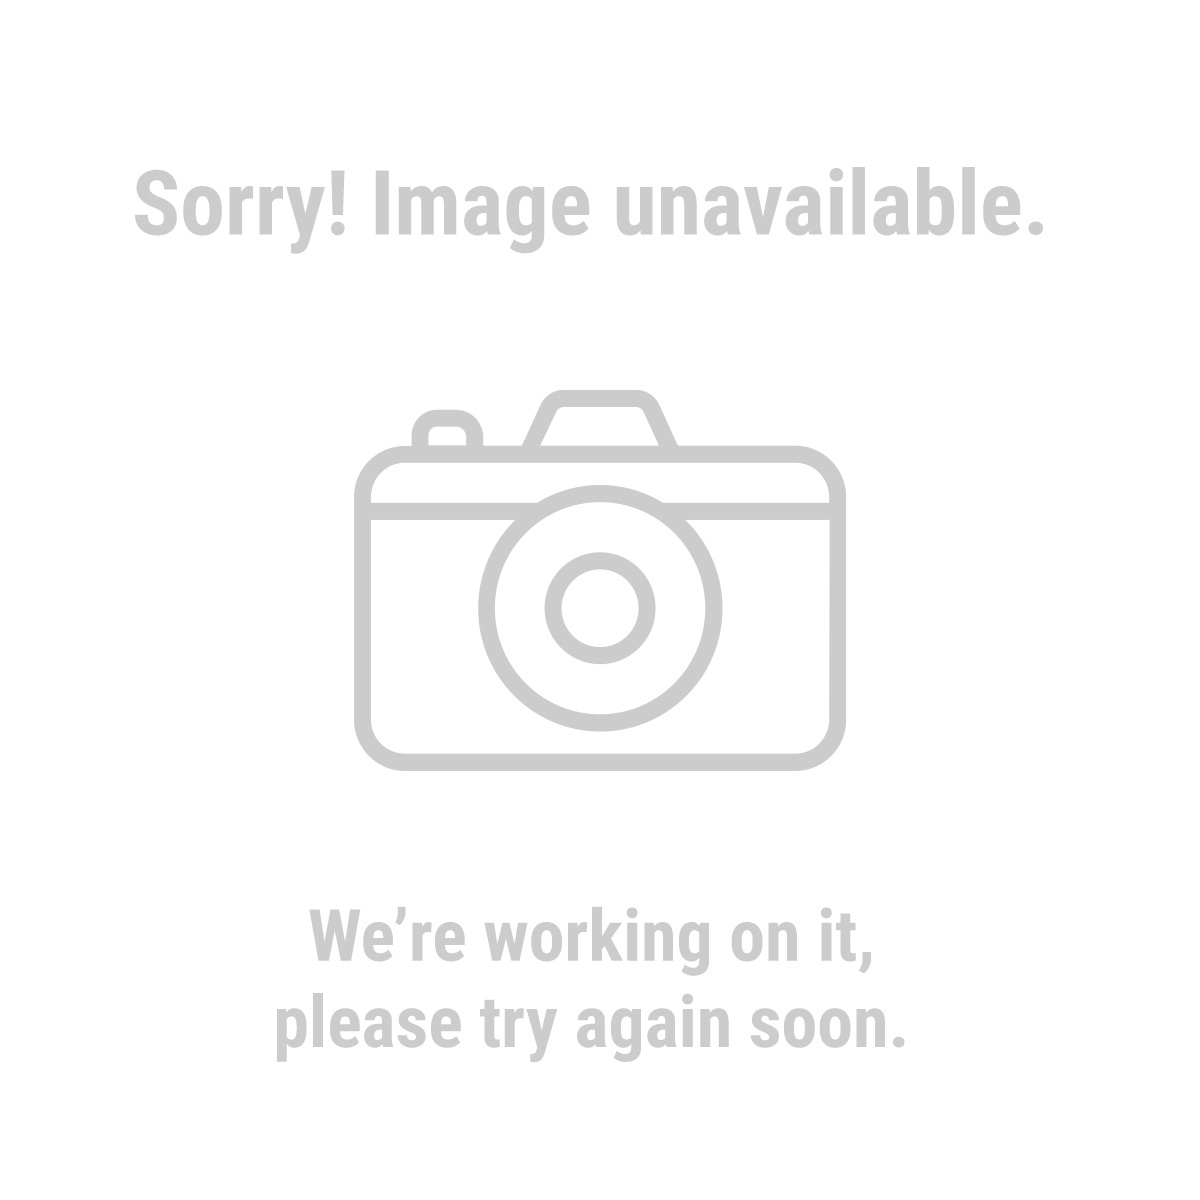 18 Gauge Brad Air Nailer